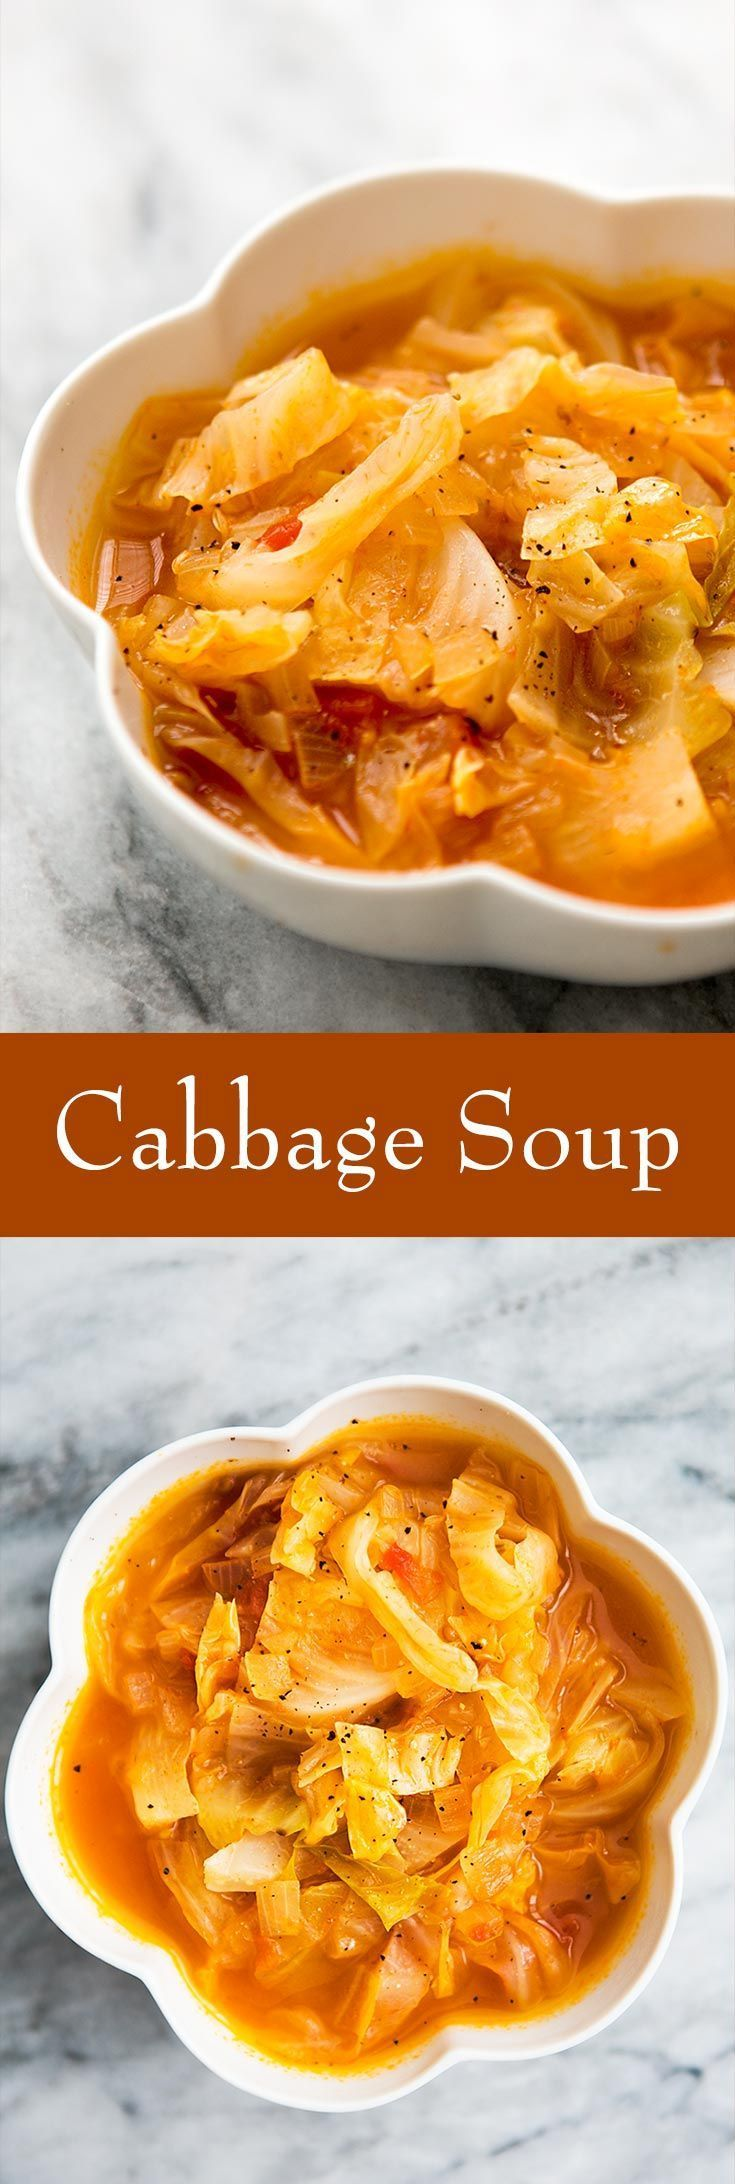 Cabbage Soup! A simple, healthy, nourishing soup with cabbage, chicken ...